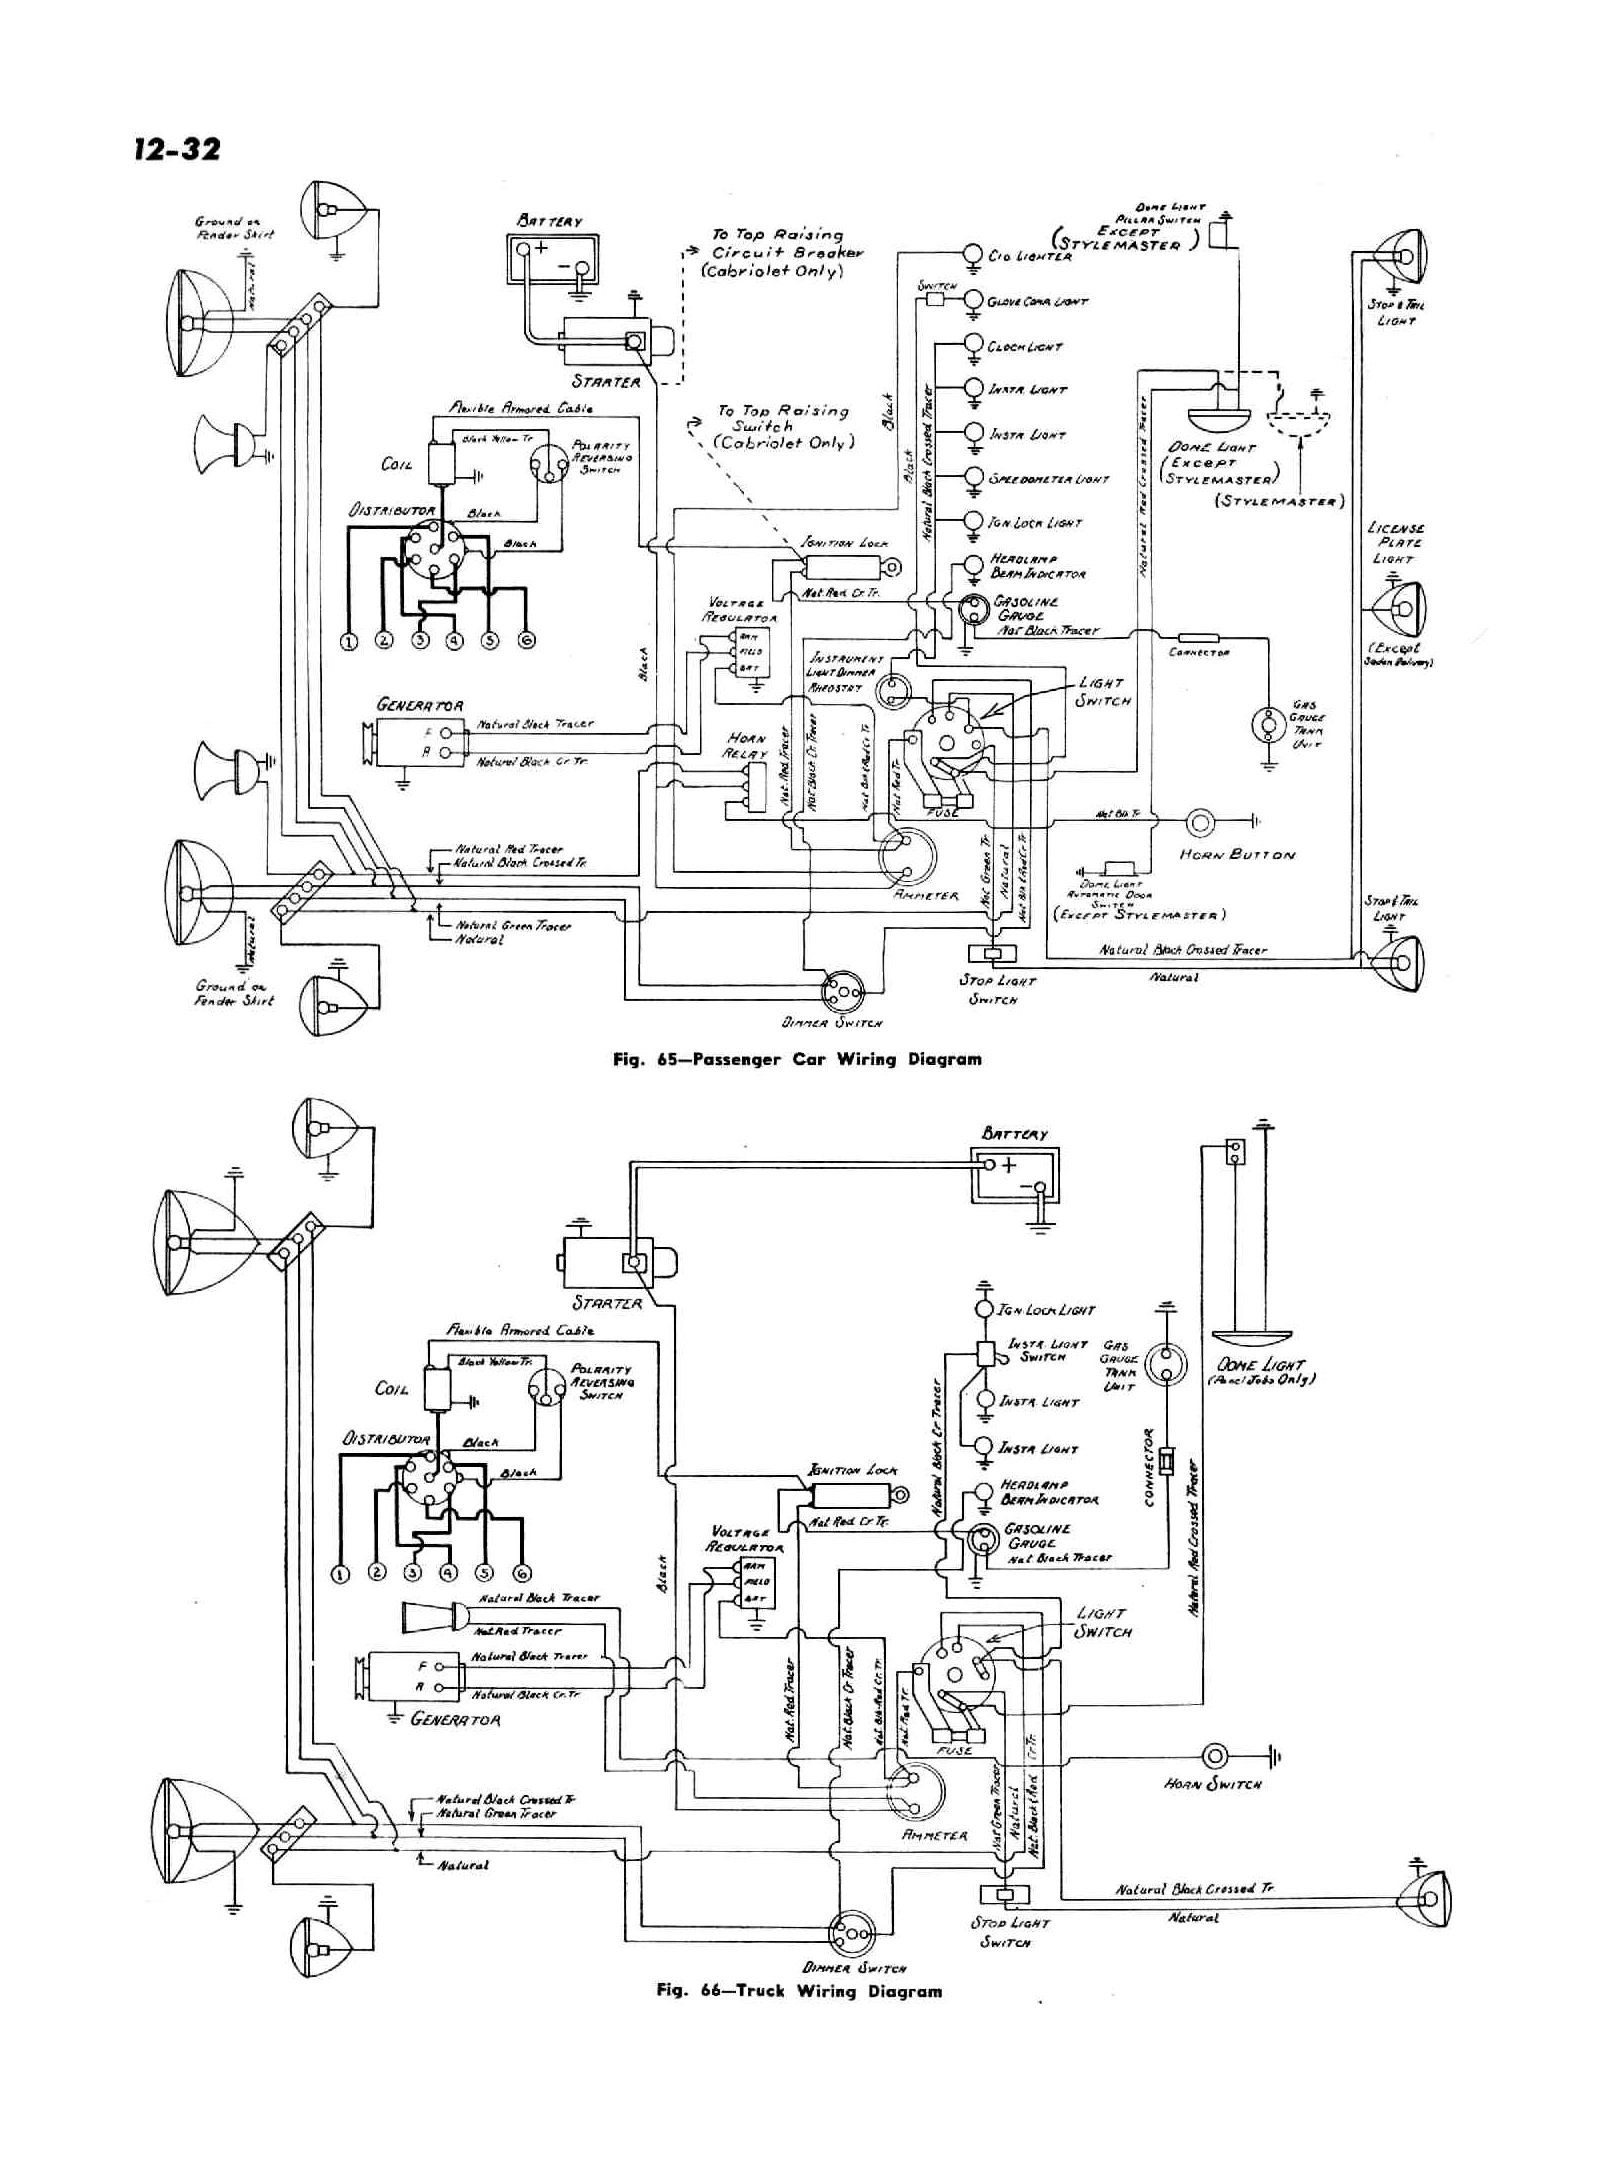 Farmall 706 Wiring Diagram | Wiring Diagram on